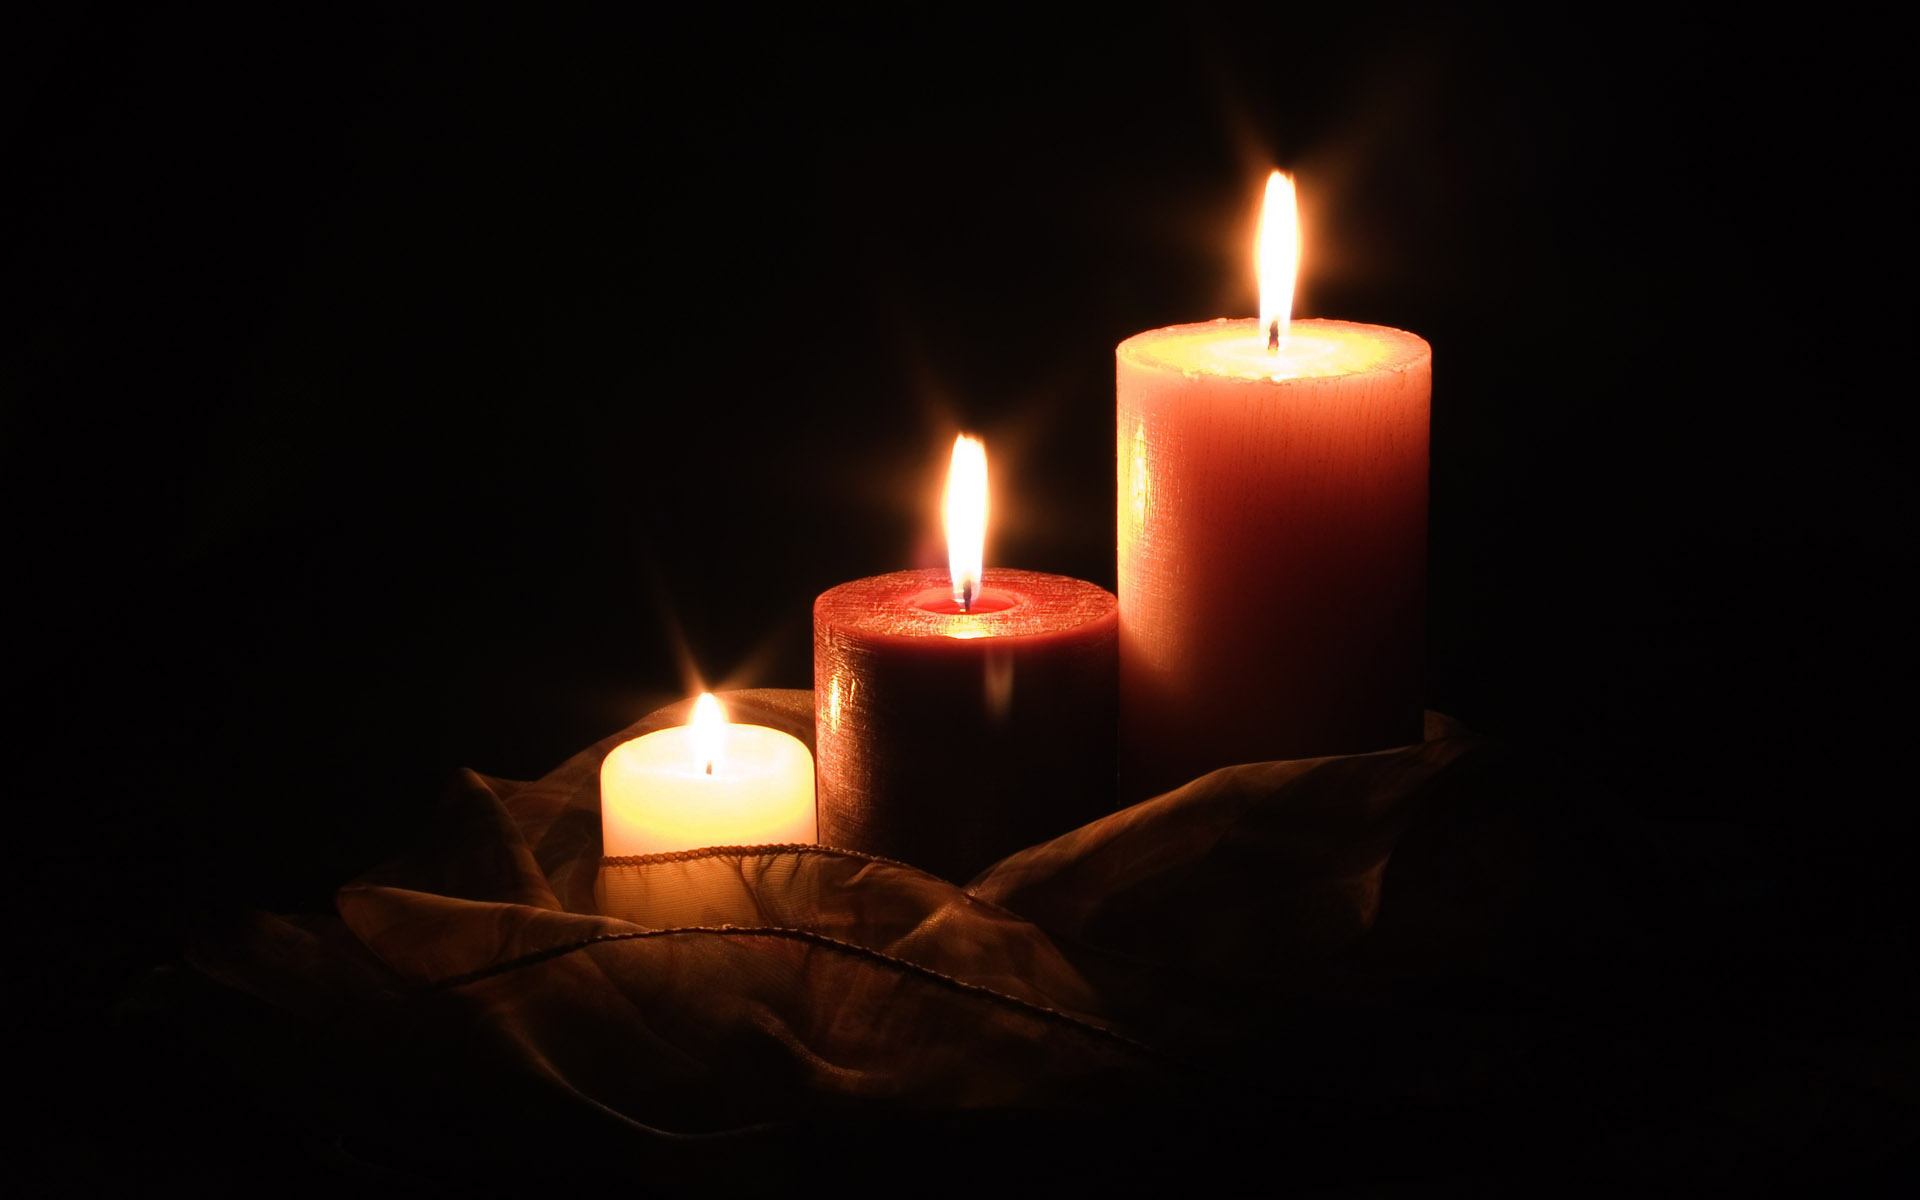 Candle wallpaper 10764